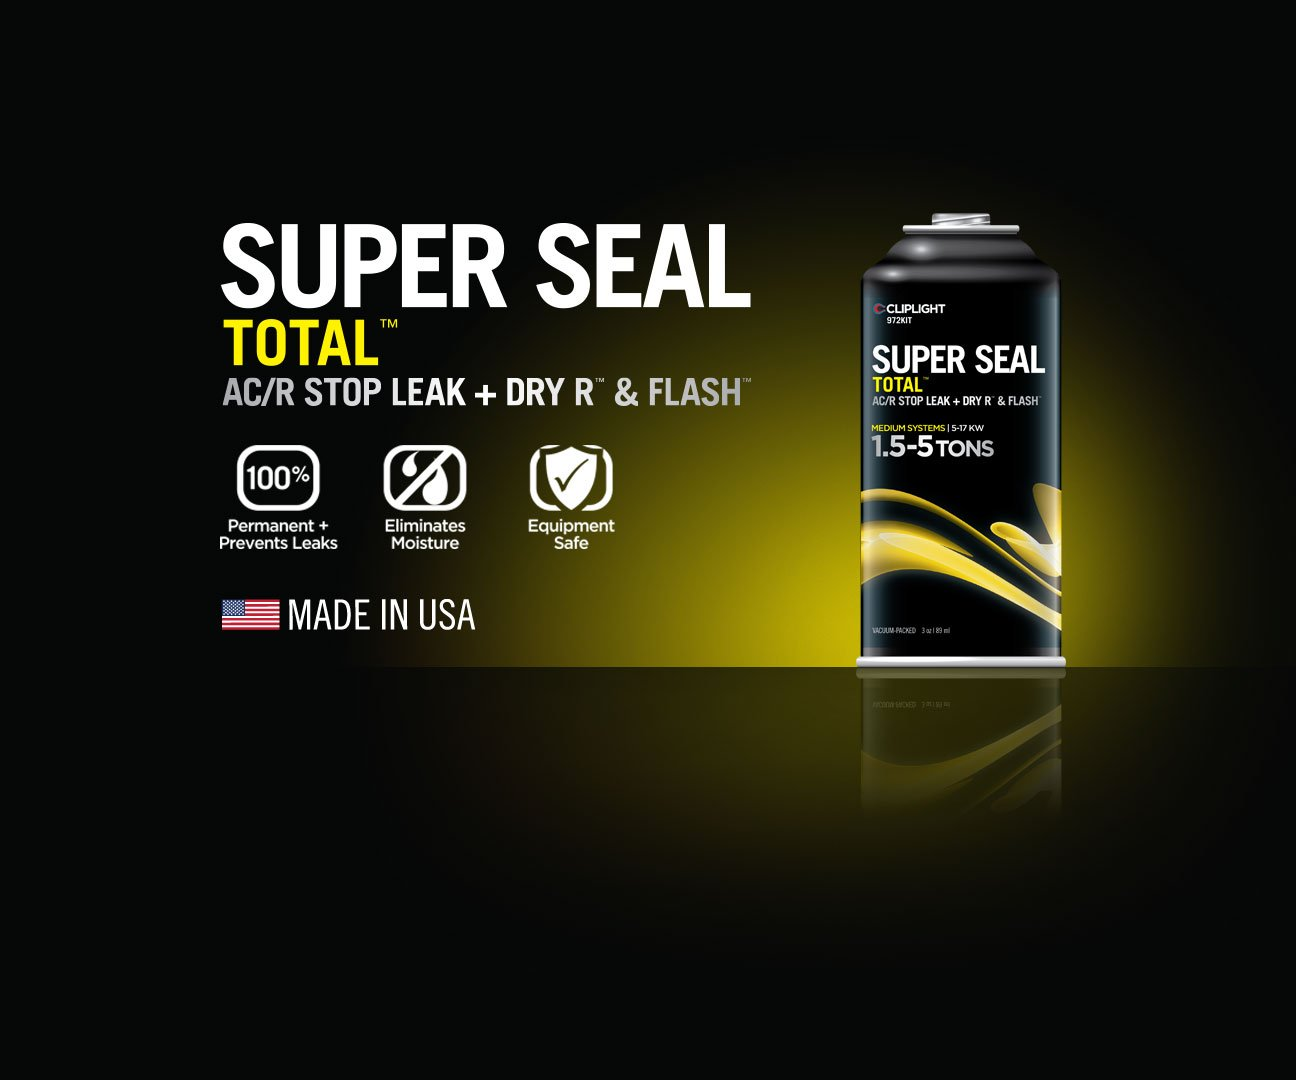 Super Seal Total